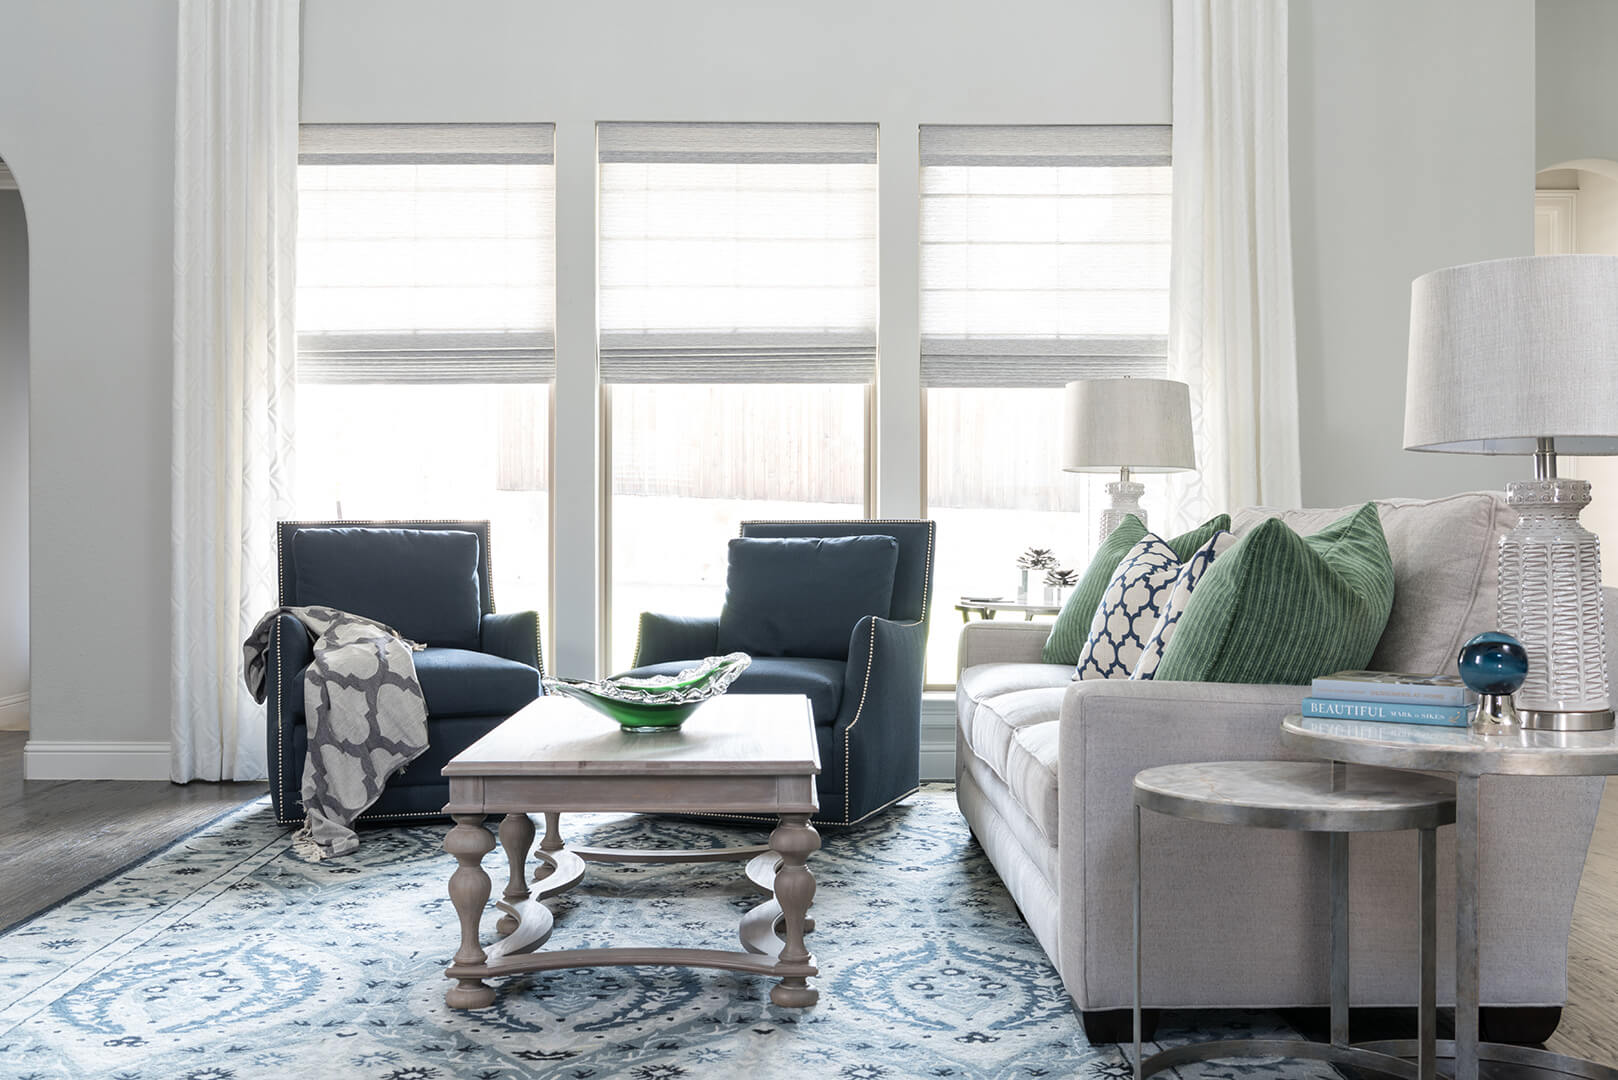 White Curtain Living Room Window Treatment Ideas with green & blue fabrics on upholstered furniture such as the chairs and sofa | Family Room Decorating Ideas | Dallas Interior Designer | Dallas Kitchen Designer